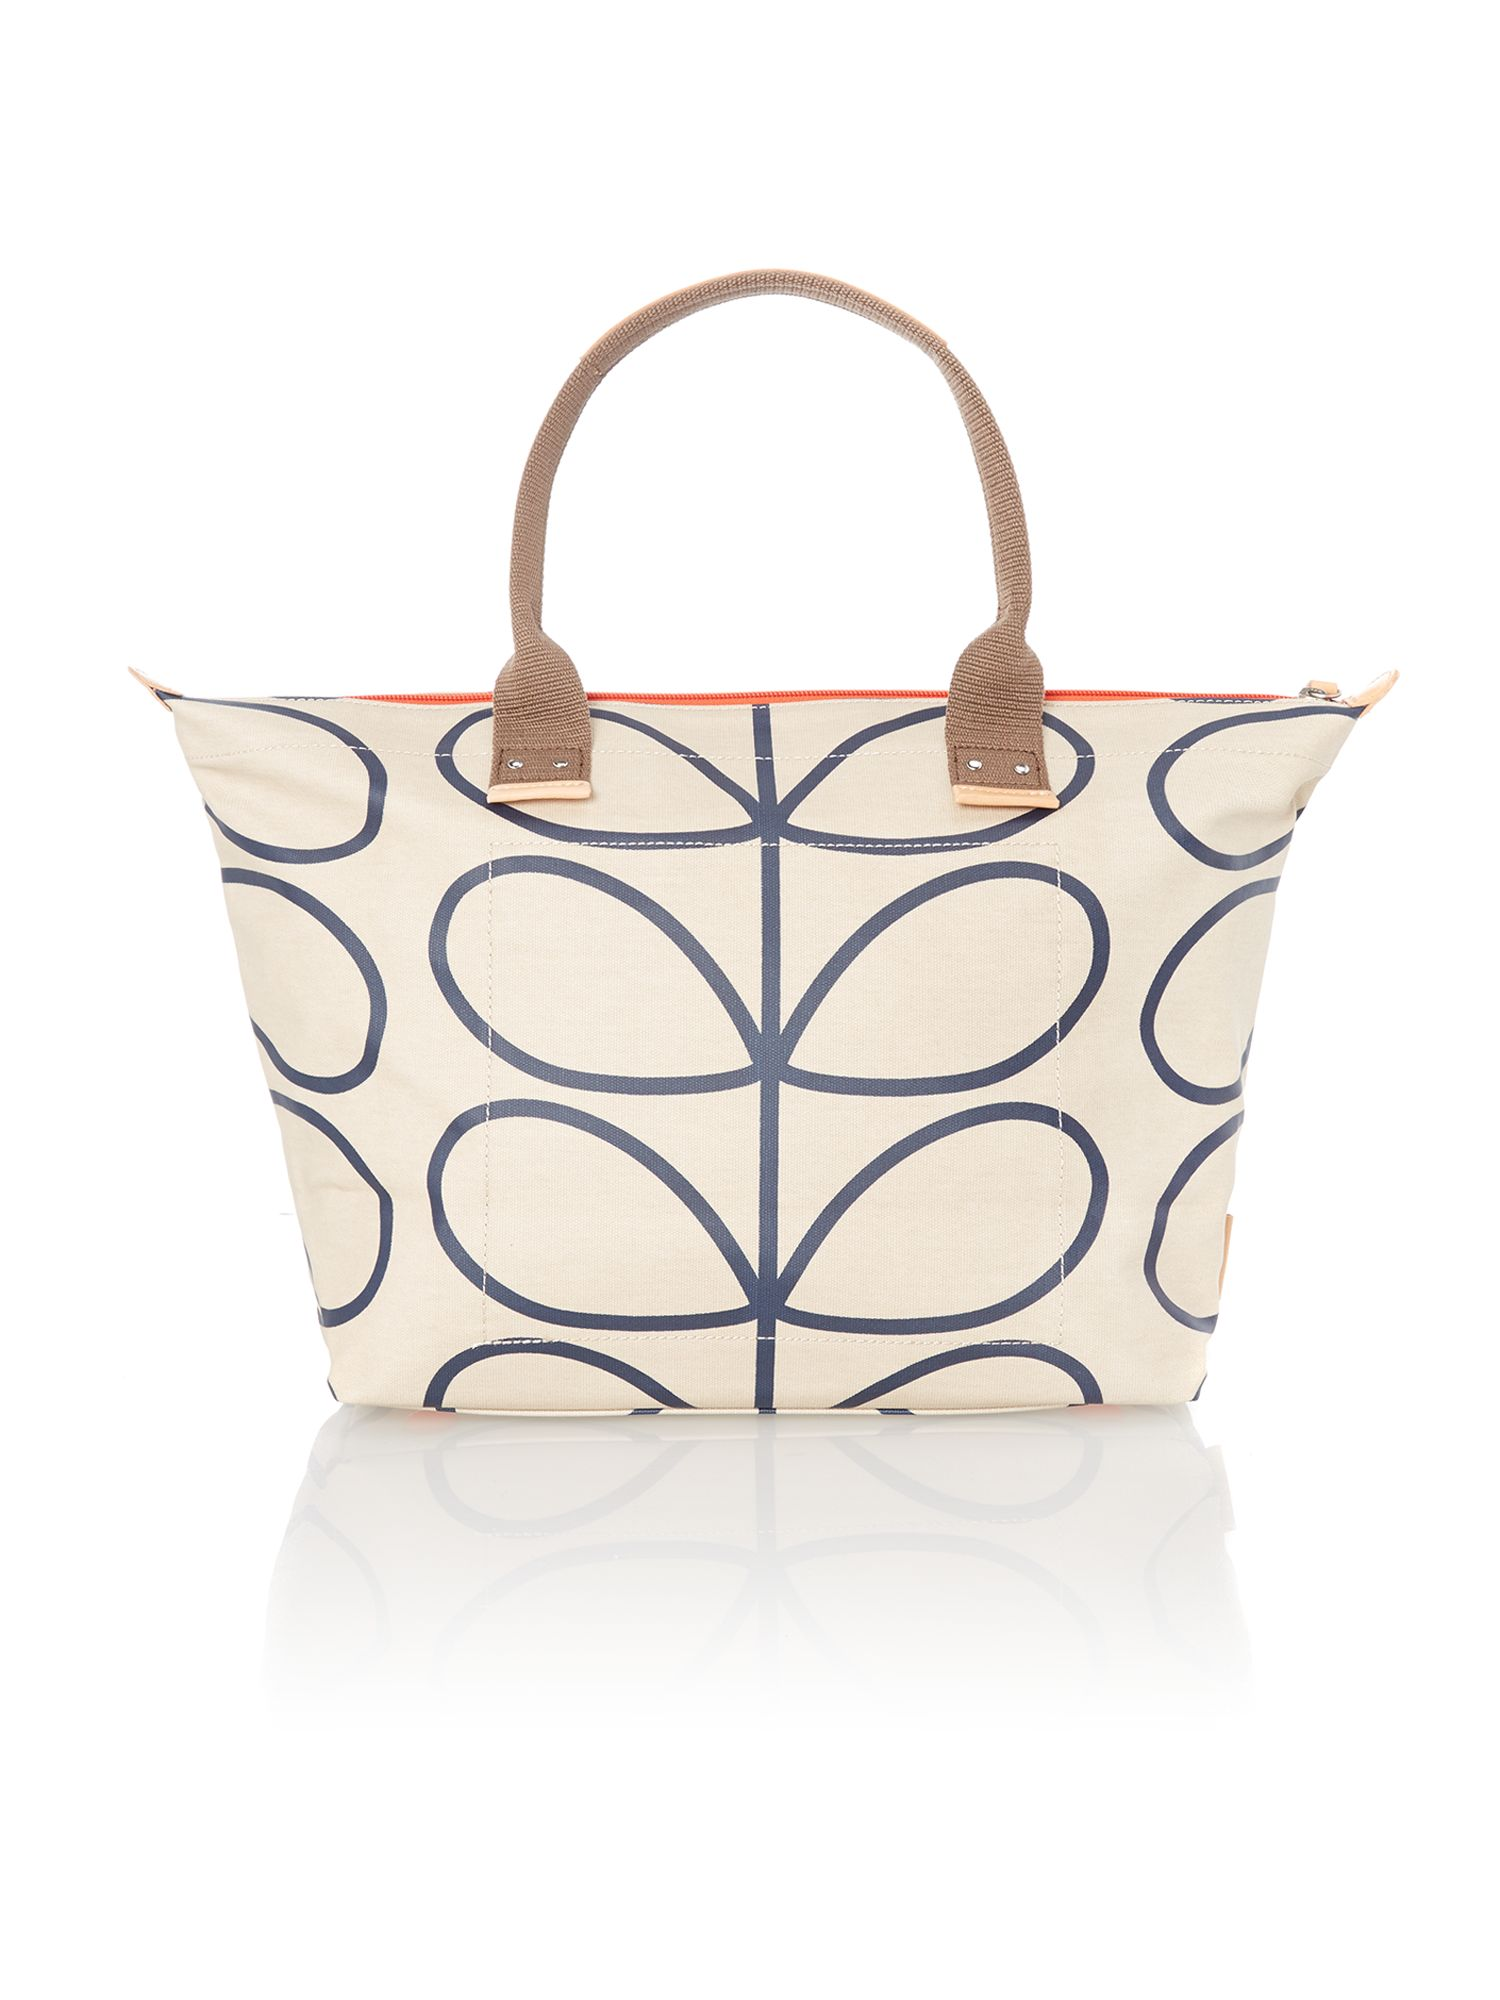 Stem print neutral tote bag